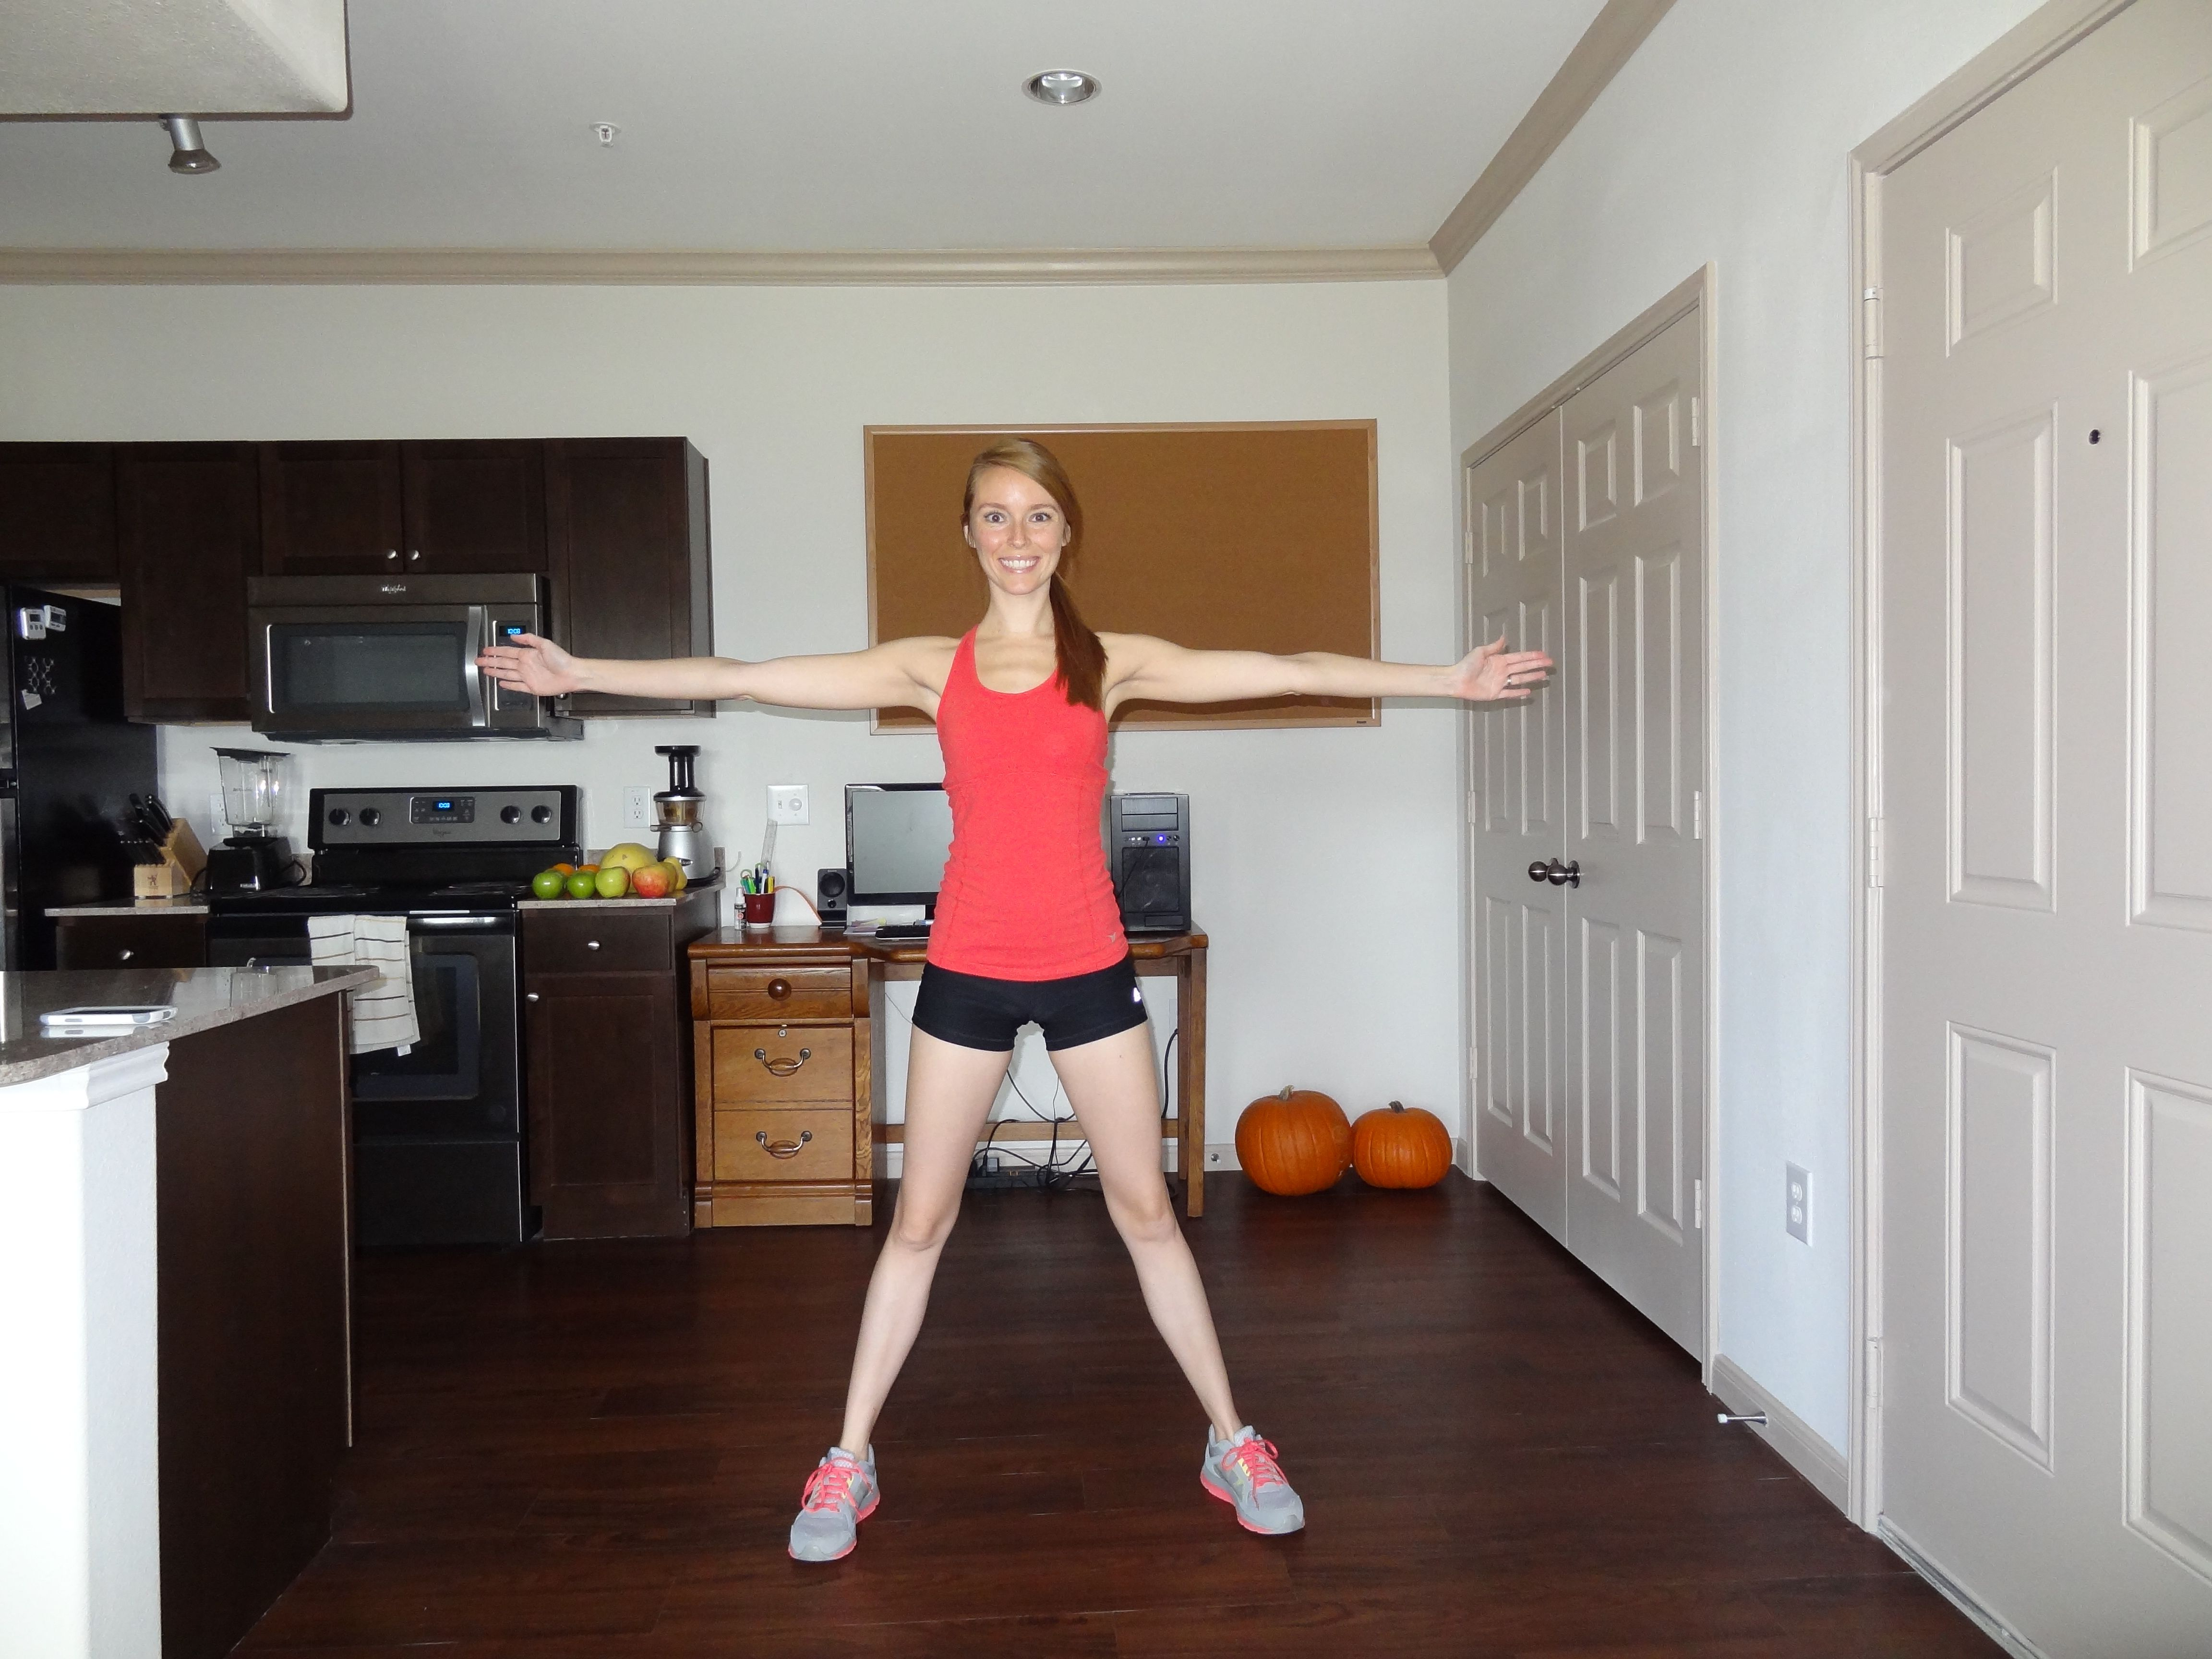 Why HIIT-yoga could be the perfect hybrid workout - and